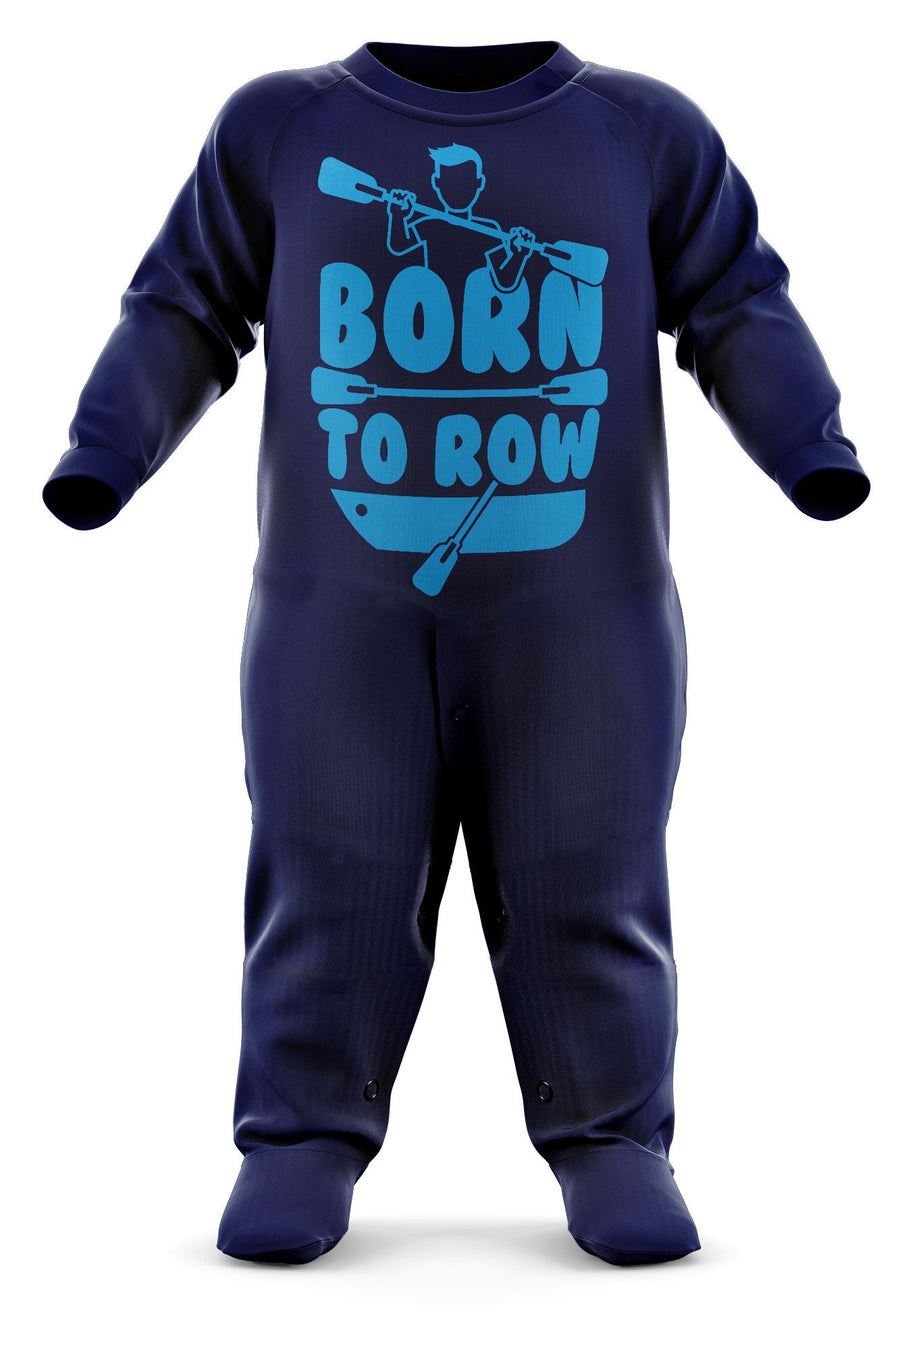 Born To Row Babygrow - Rowing Baby Romper Suit - Future Oarsman's First Christmas Gift - Birthday Present - Newborn Romper